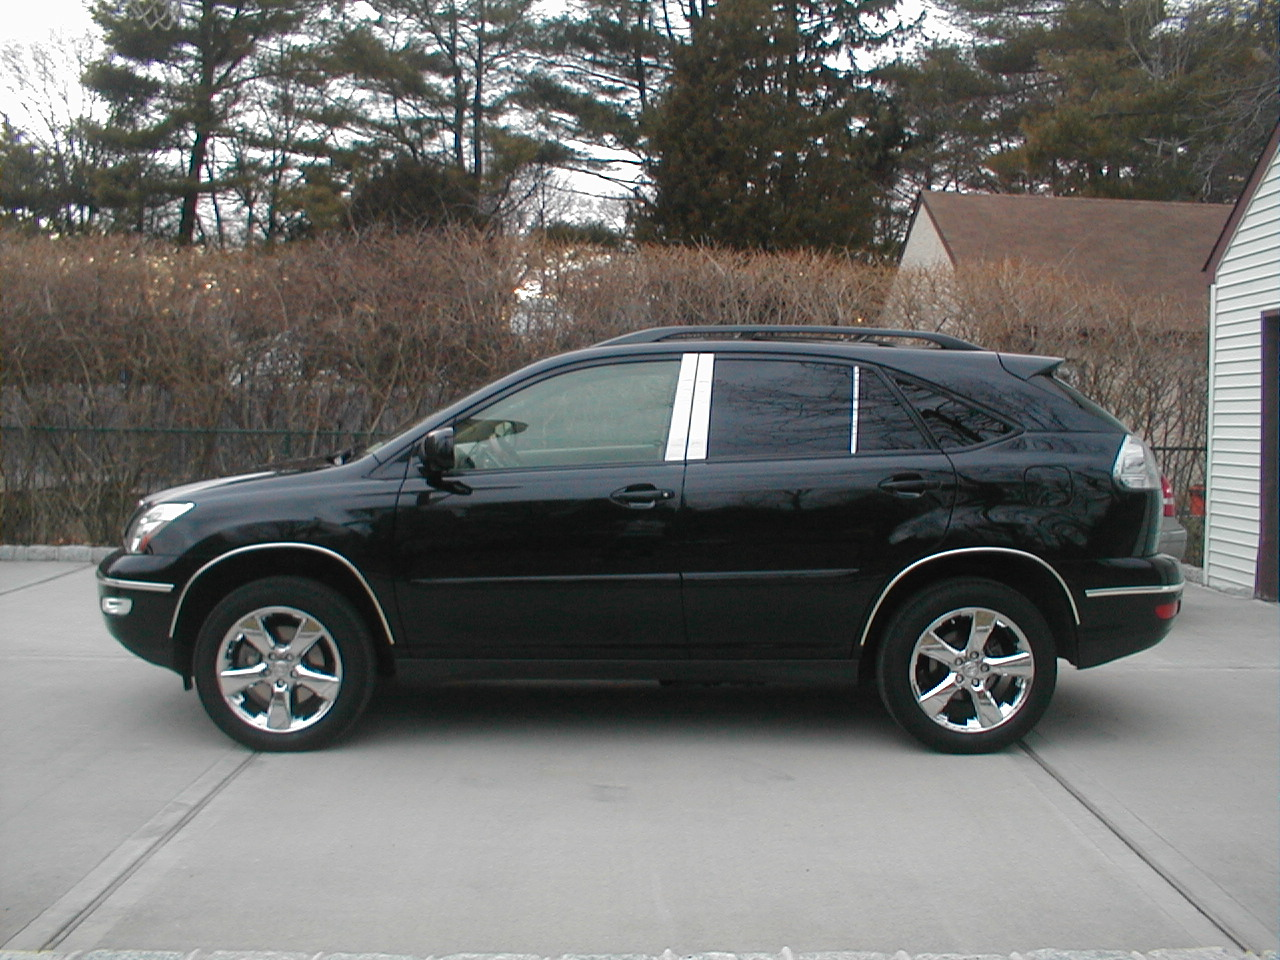 used 2004 lexus rx 330 suv consumer reviews edmunds. Black Bedroom Furniture Sets. Home Design Ideas